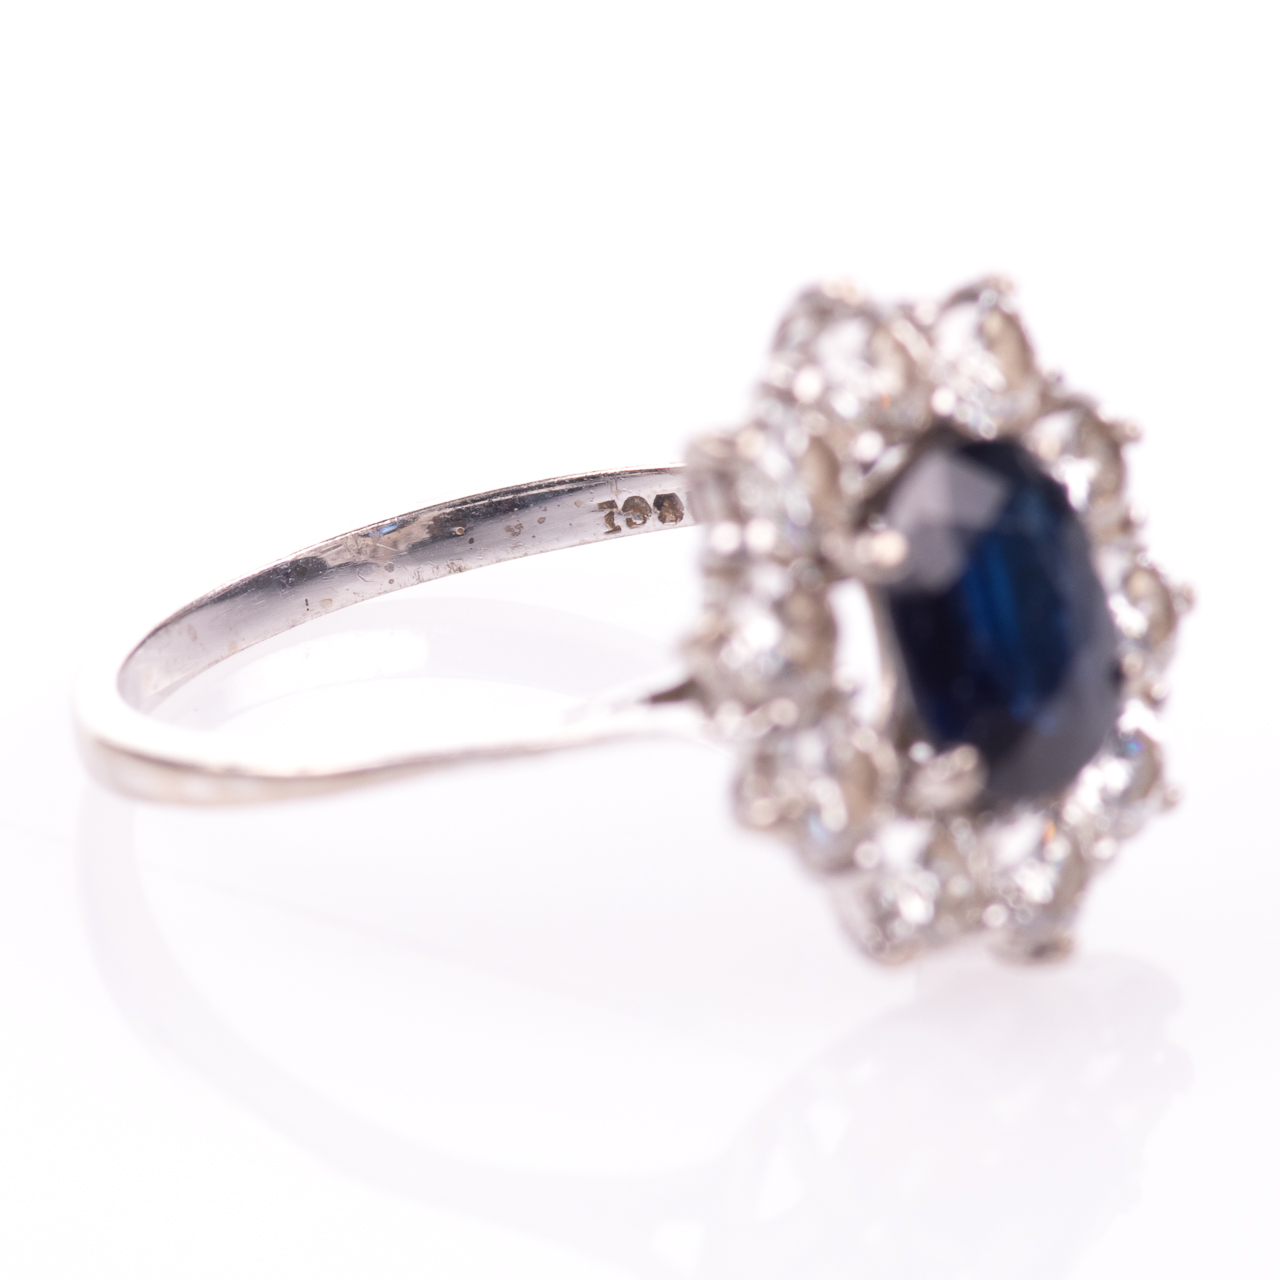 18ct White Gold 1ct Sapphire & 1ct Diamond Cluster Ring - Image 7 of 7